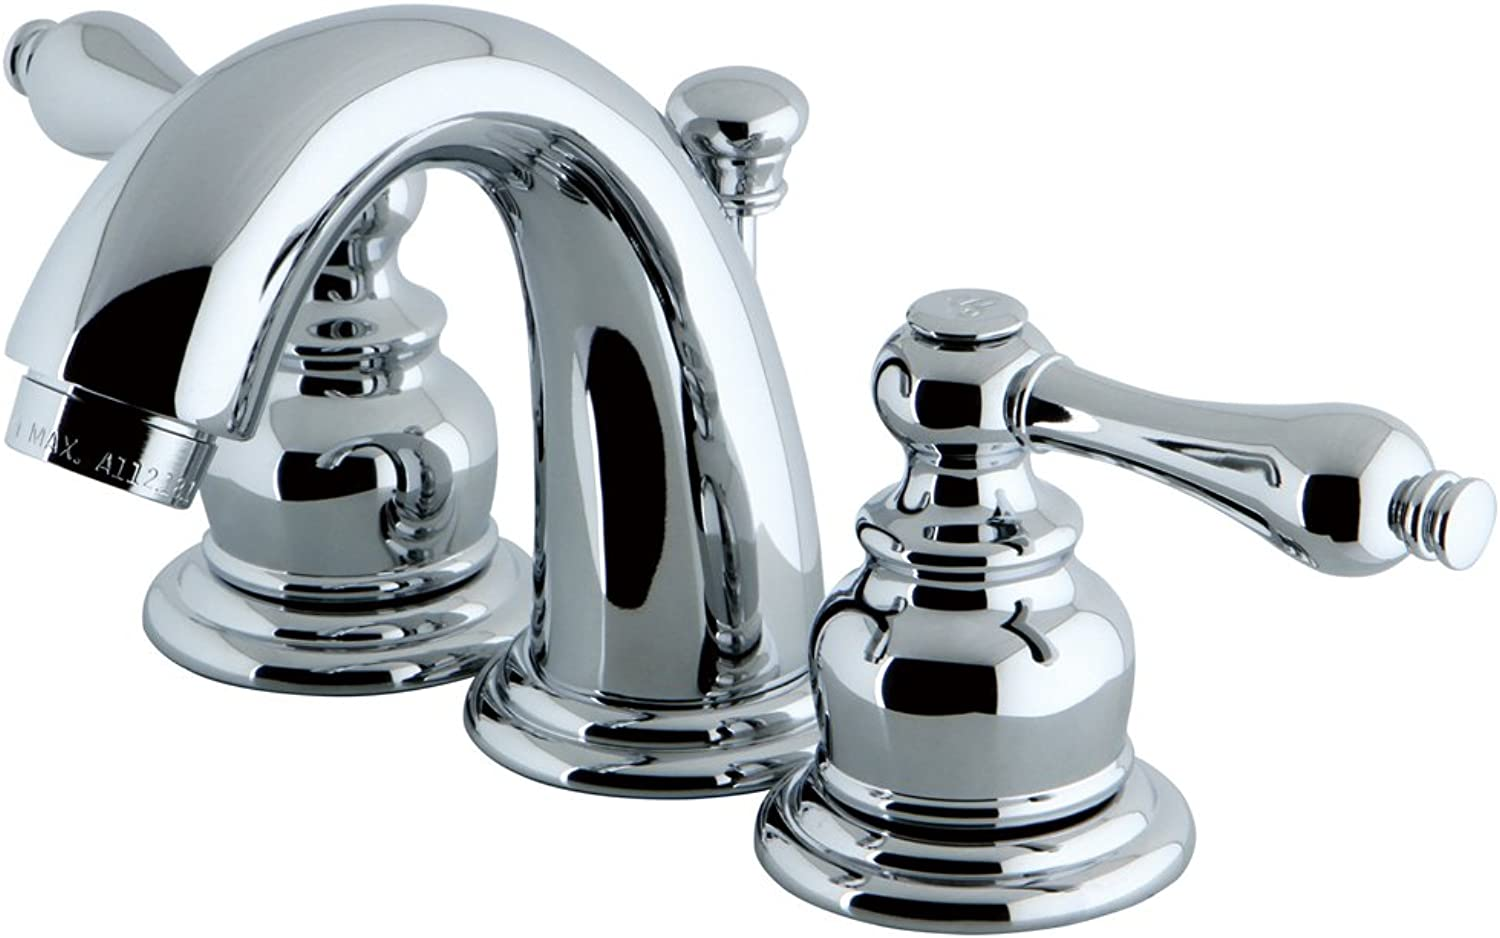 Elements of Design Magellan EB911AL Mini Widespread Lavatory Faucet with Retail Pop-Up, 4-Inch to 8-Inch, Polished Chrome by Elements of Design